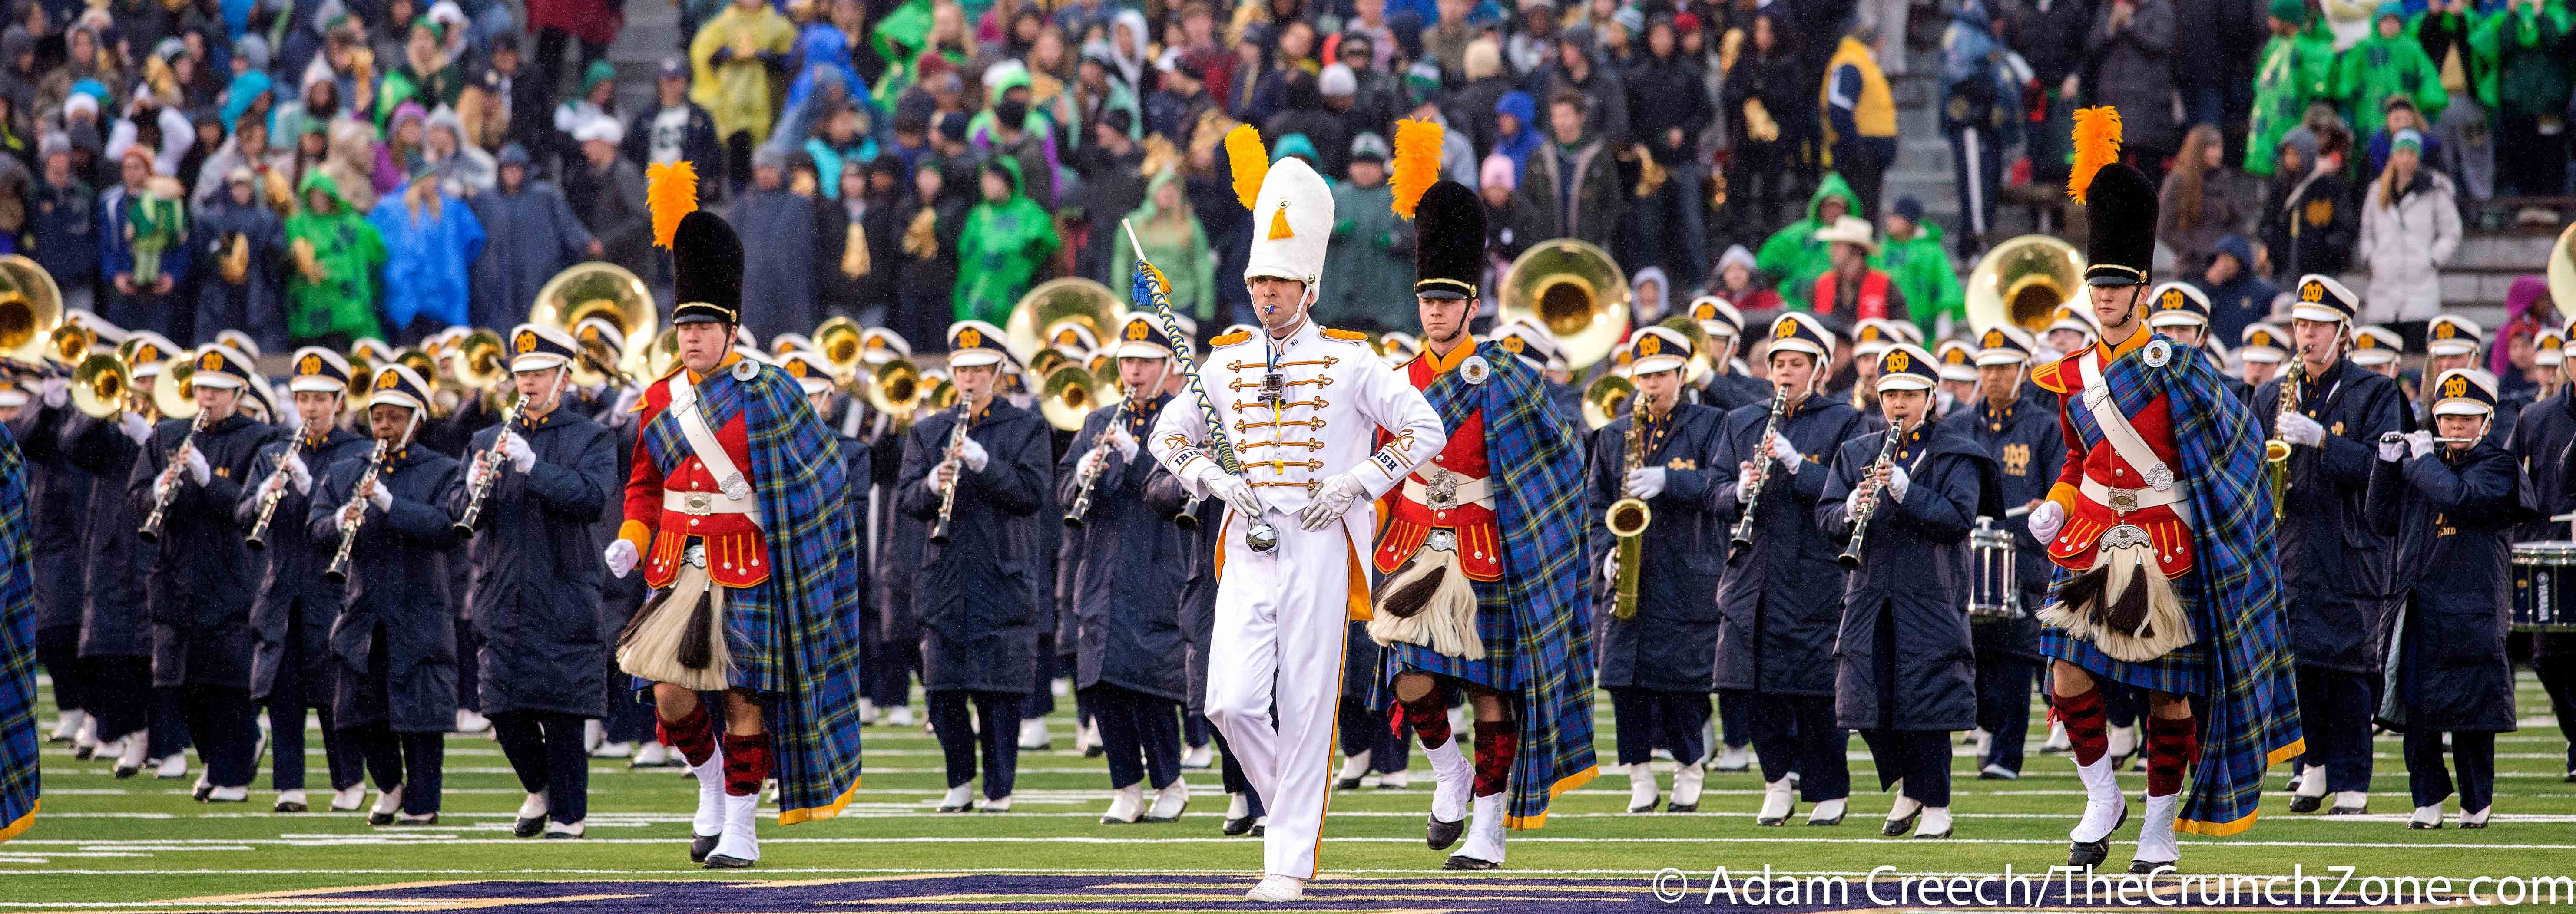 Marching Band Louisville vs. Notre Dame Photo by Adam Creech 11-22-2014 Fitted